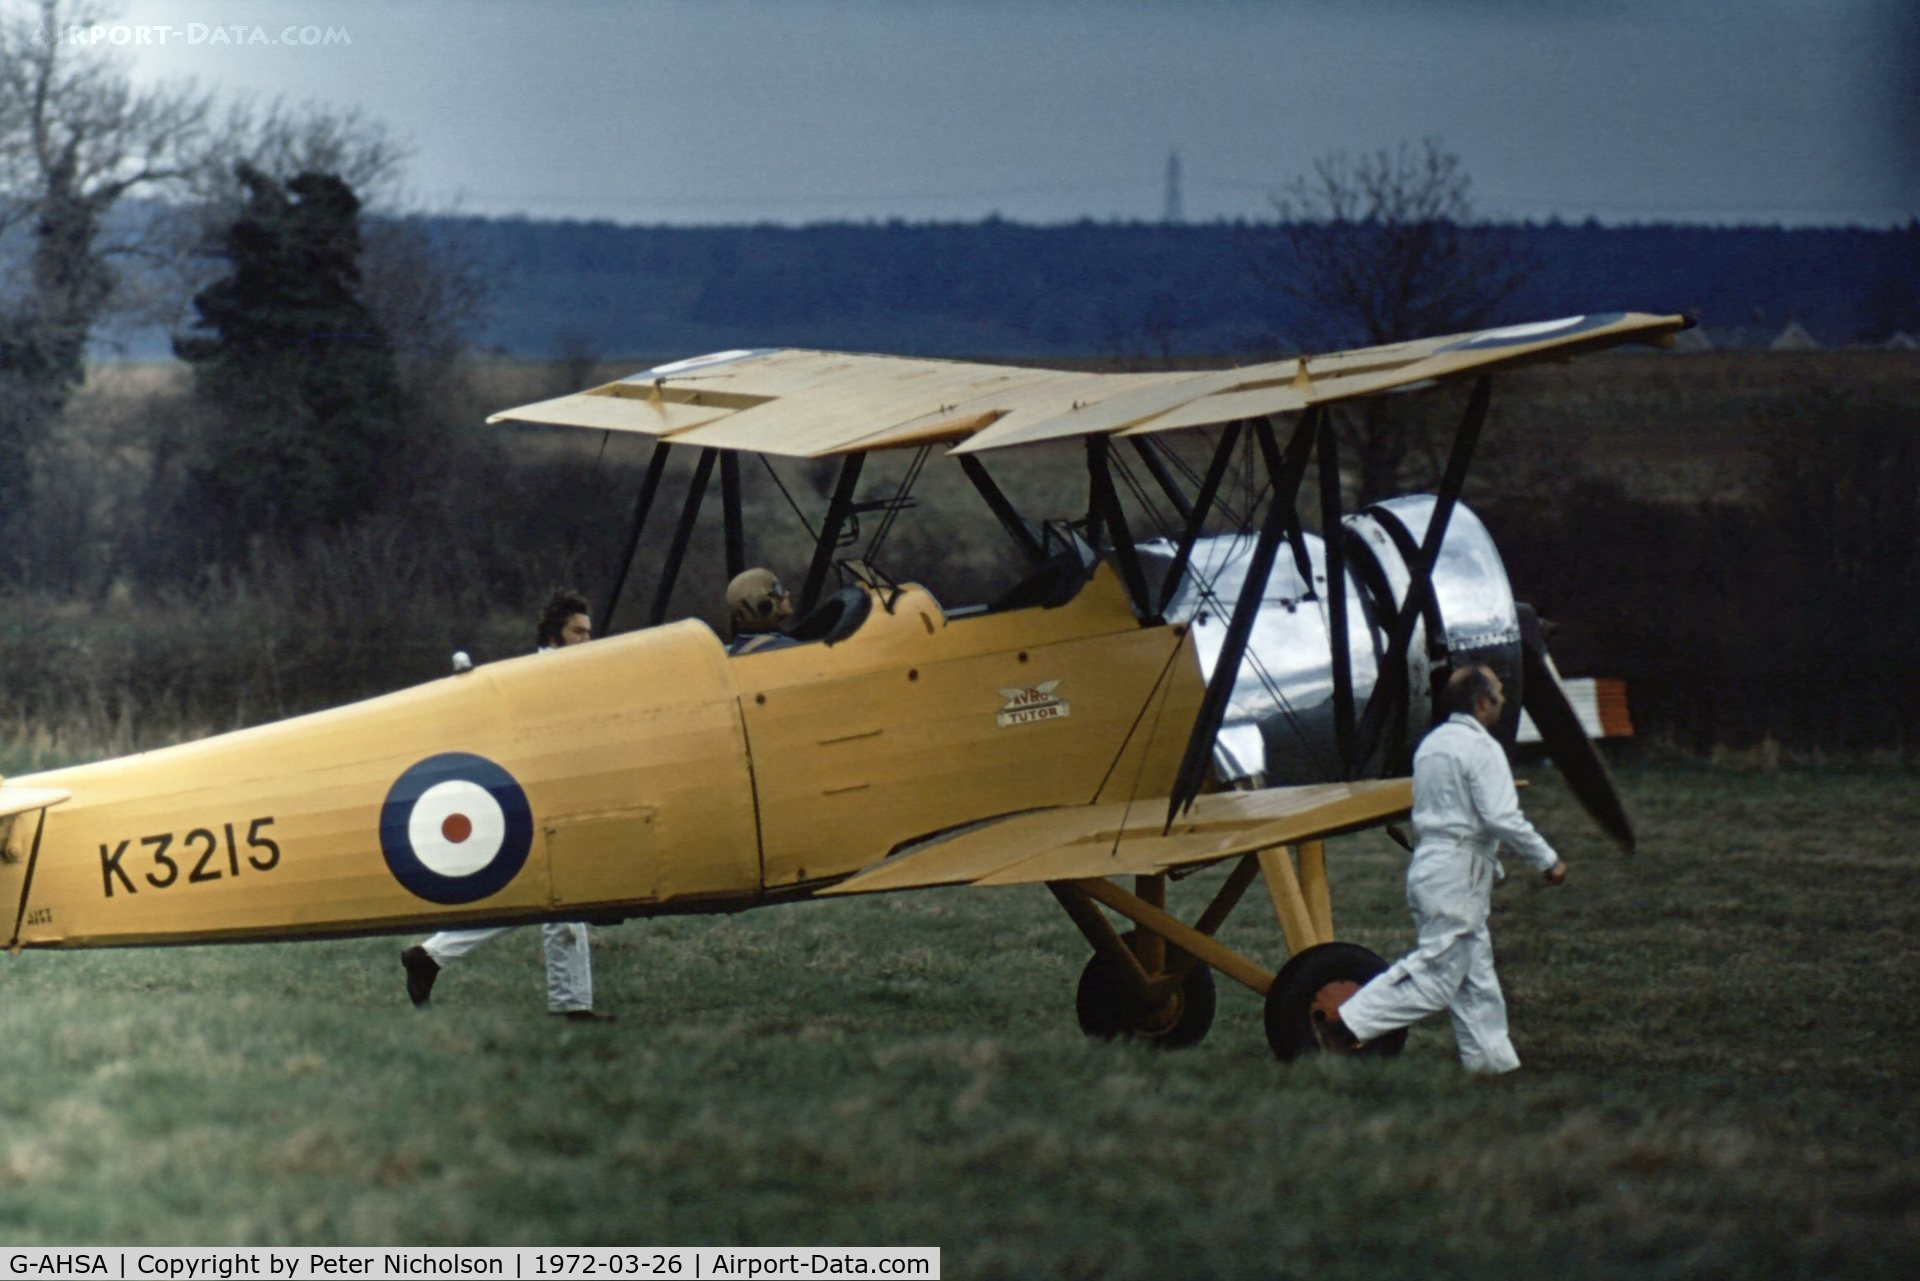 G-AHSA, 1933 Avro 621 Tutor C/N K3215, Avro Tutor as K3215 preparing for take-off at Old Warden in the Spring of 1972.